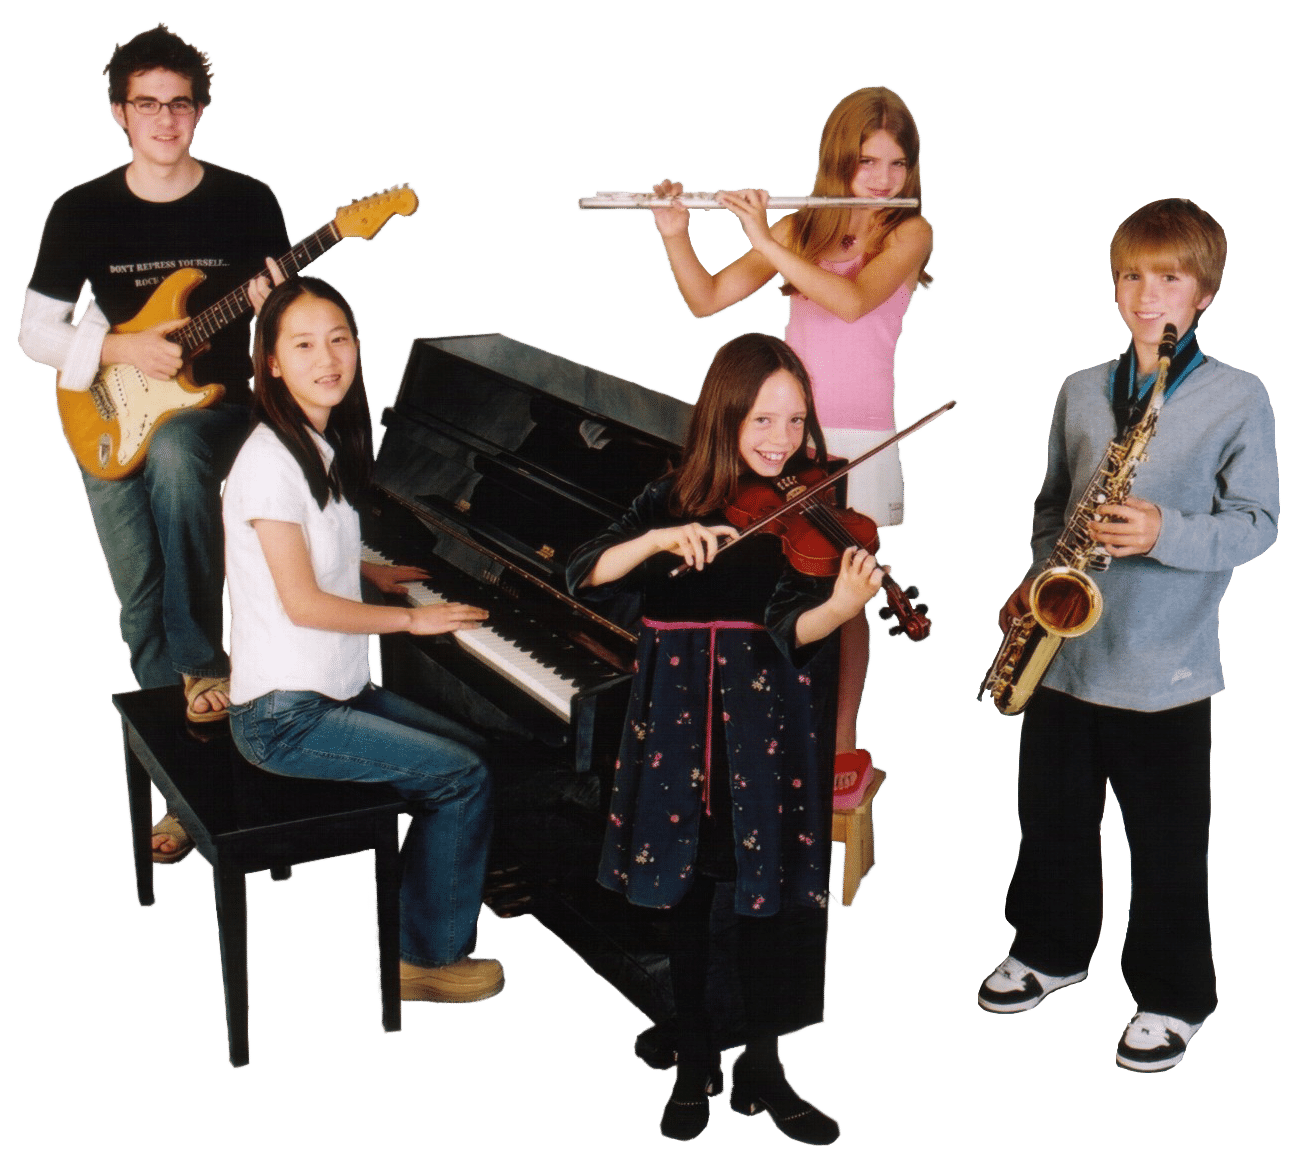 music kids 2006 cutout